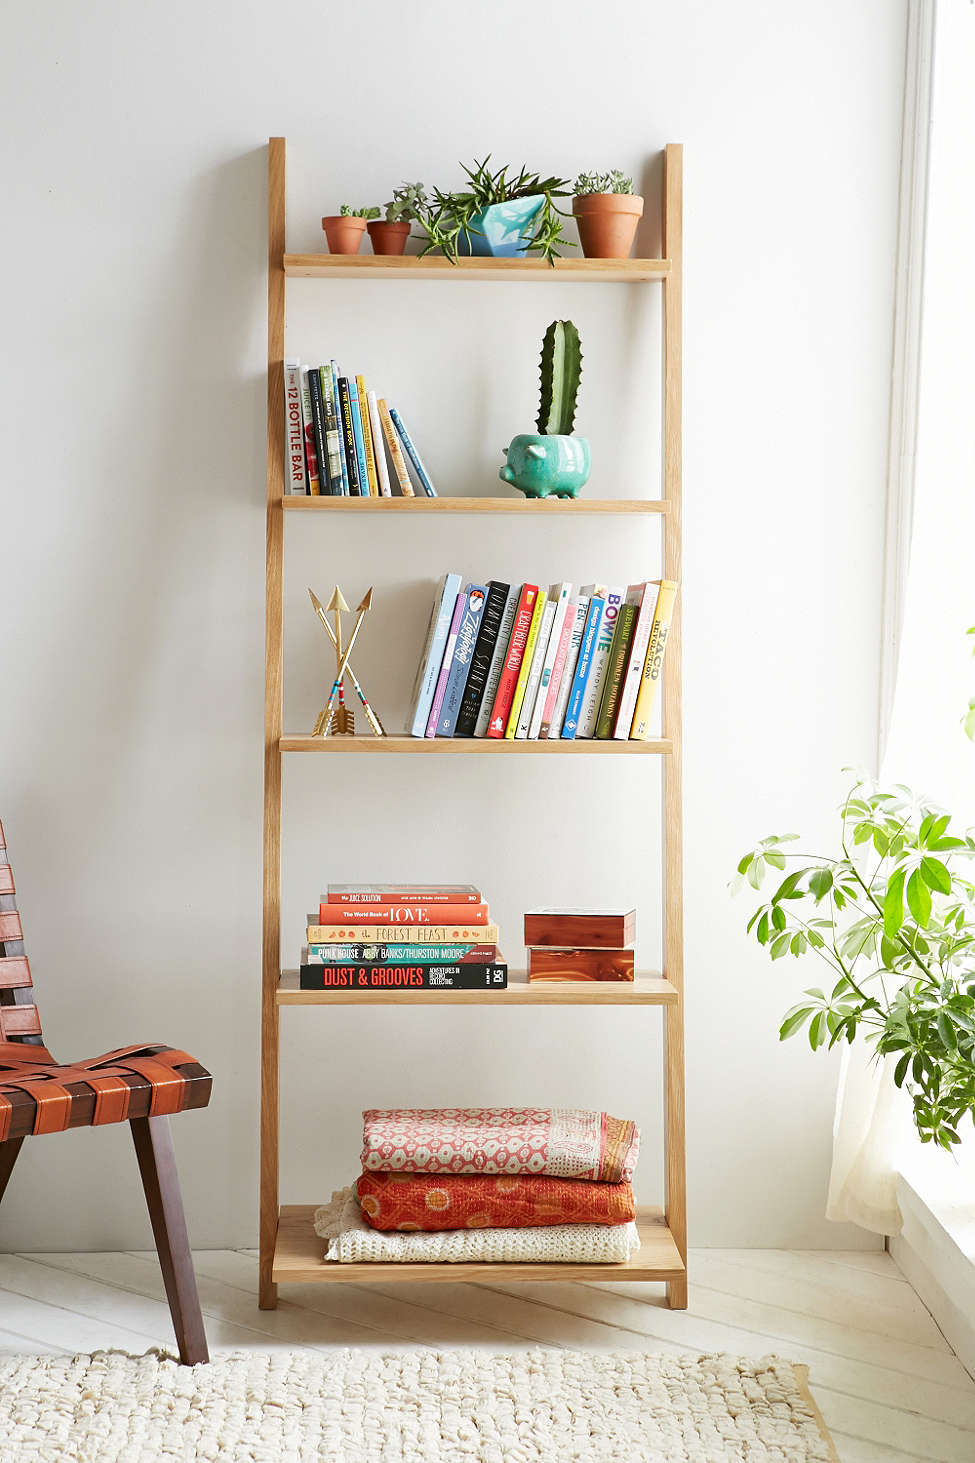 High Quality Leaning Bookshelf Design Possibilities U2013 Casual With A Hint Of Originality